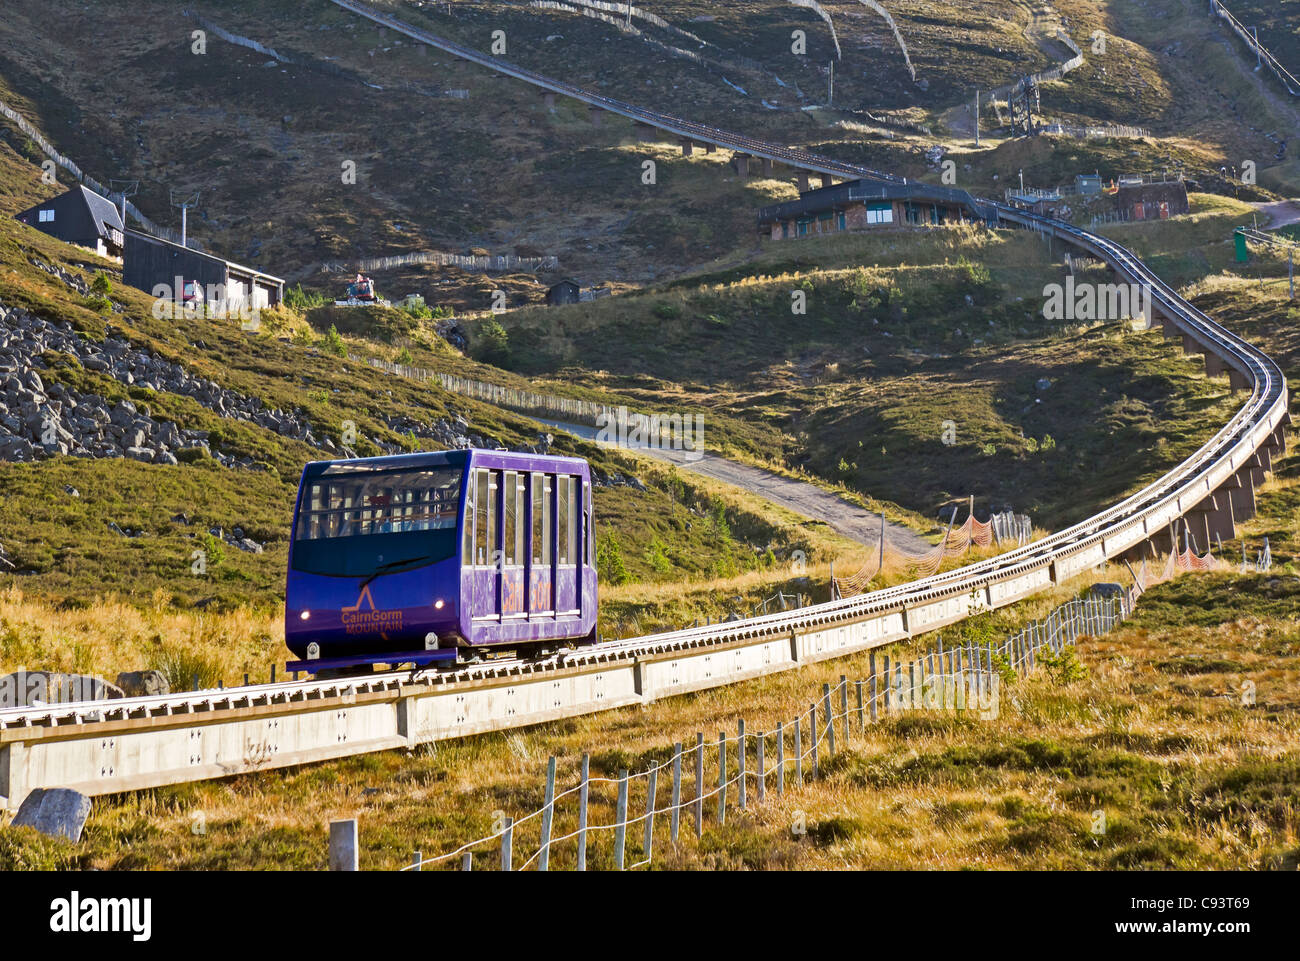 The Cairngorm Mountain middle installation on Cairn Gorm in Cairngorm National Park Scotland with funicular car - Stock Image